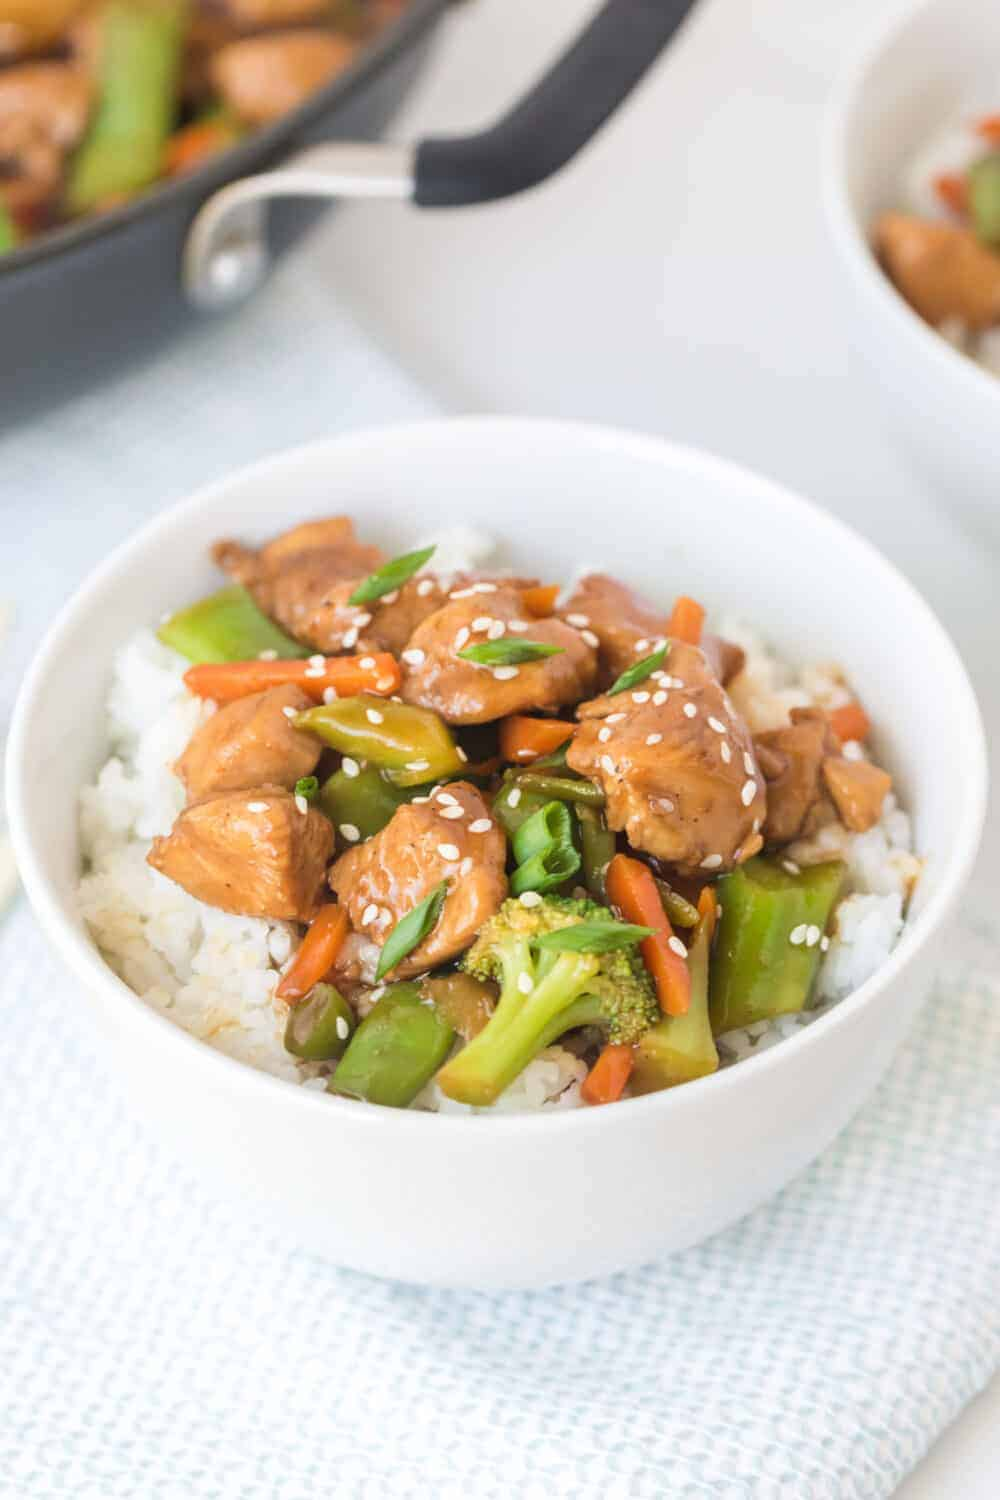 stir fry chicken and vegetables with white rice in a white bowl closeup